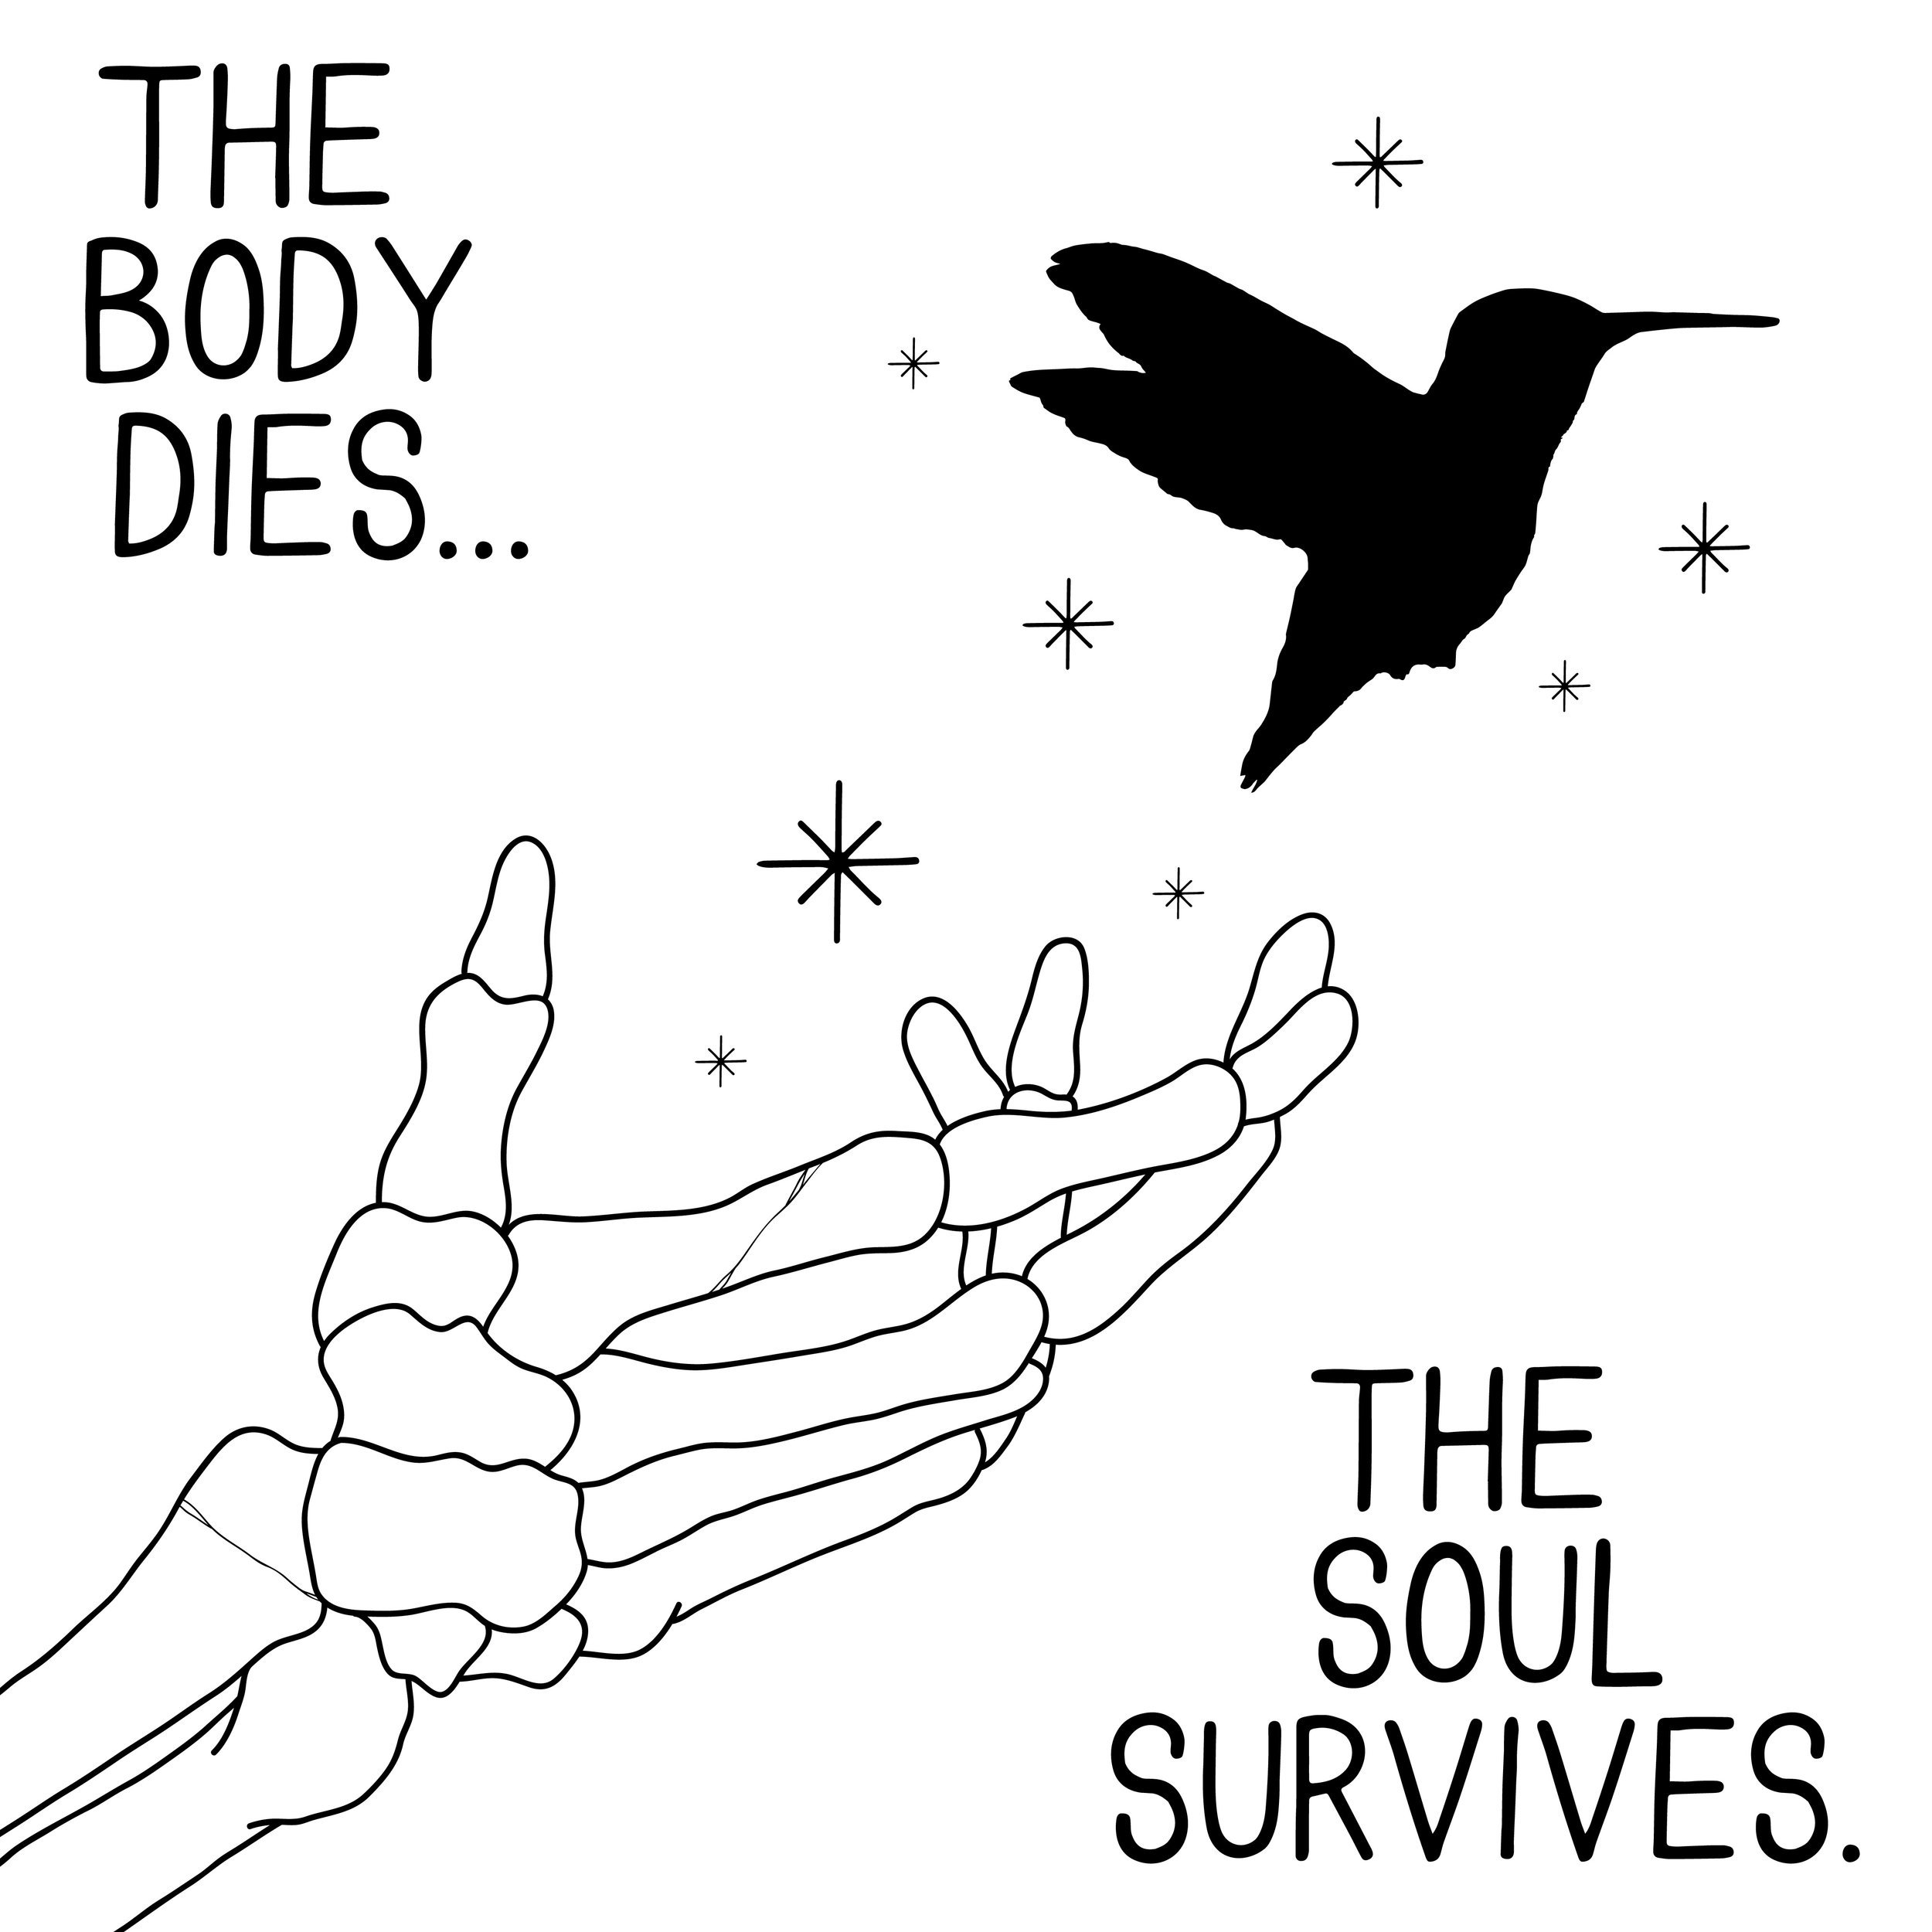 thesoulsurvives-01.jpg